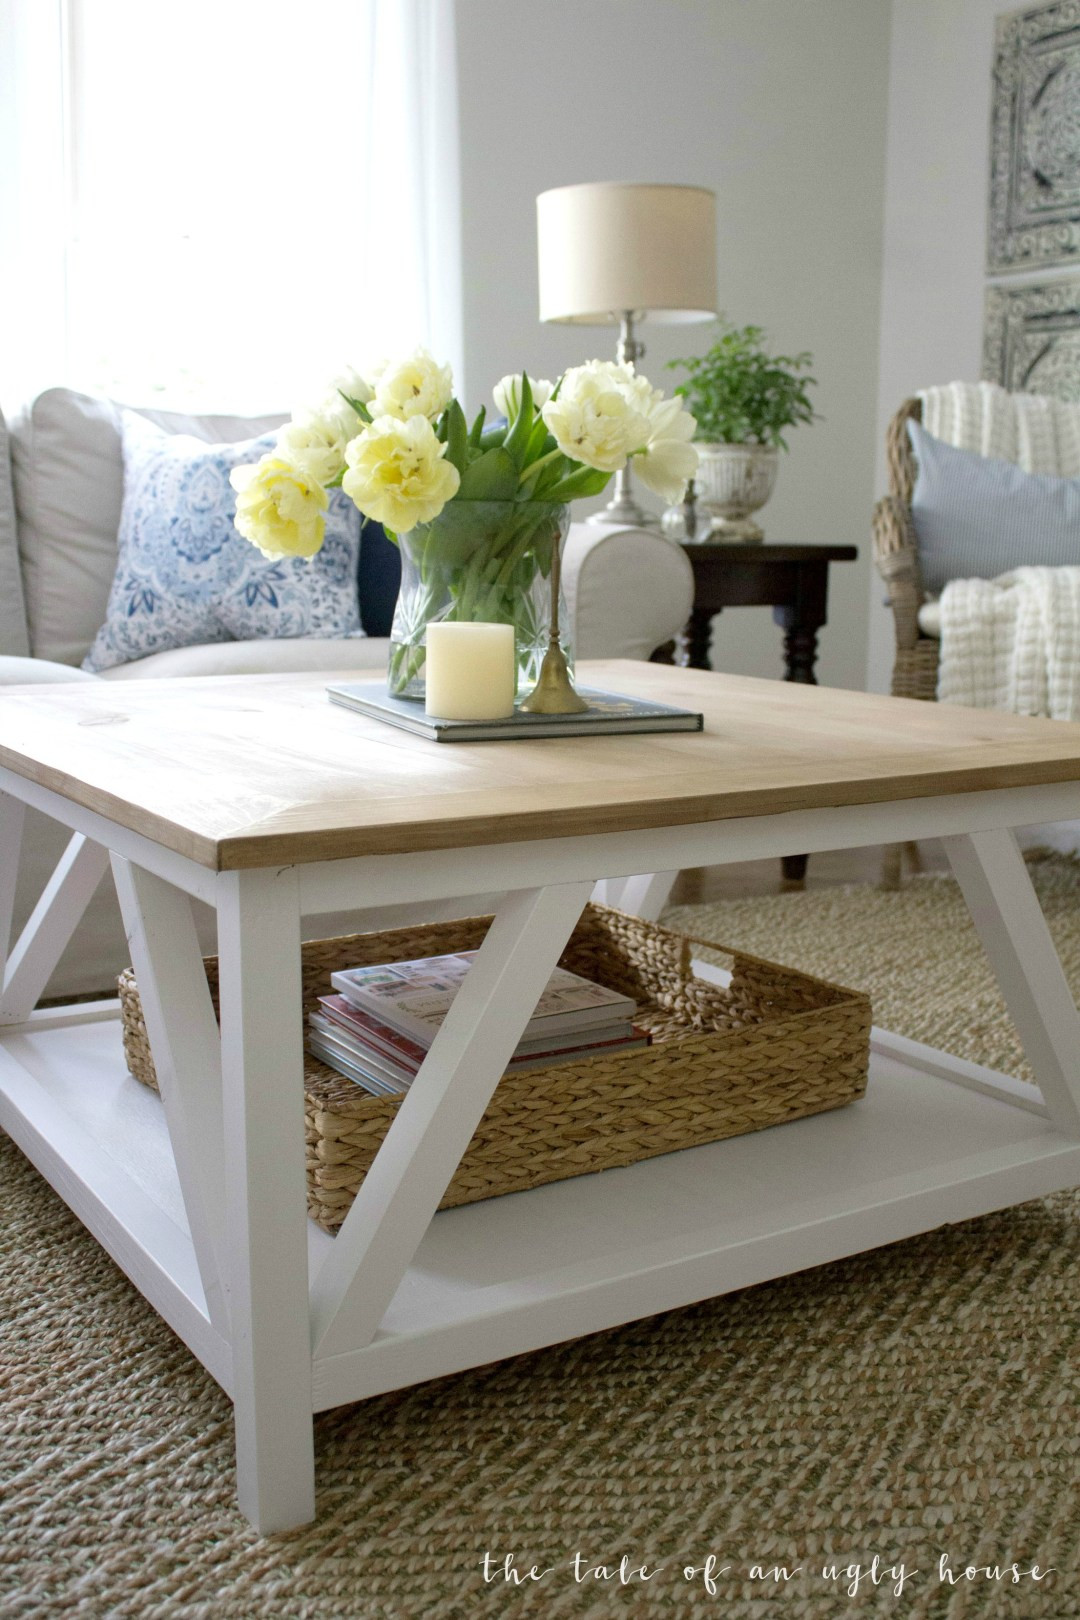 Best ideas about DIY Modern Coffee Table . Save or Pin DIY Modern Farmhouse Coffee Table Sincerely Marie Designs Now.